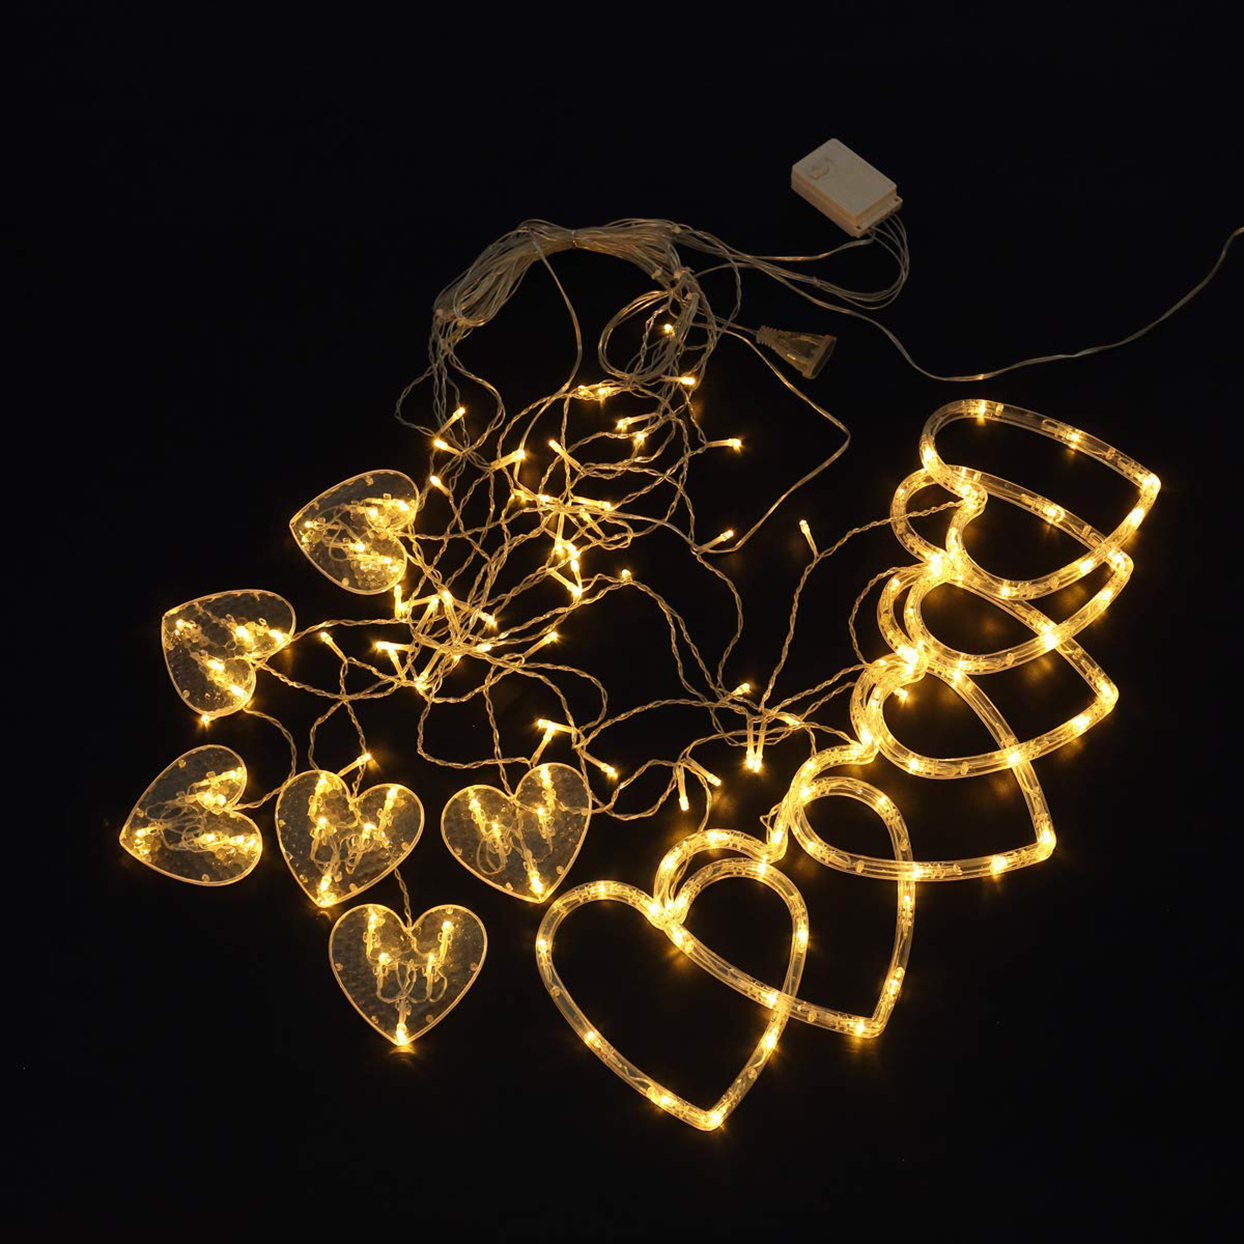 Domoos 138 LED String Lights, Love Heart Curtain